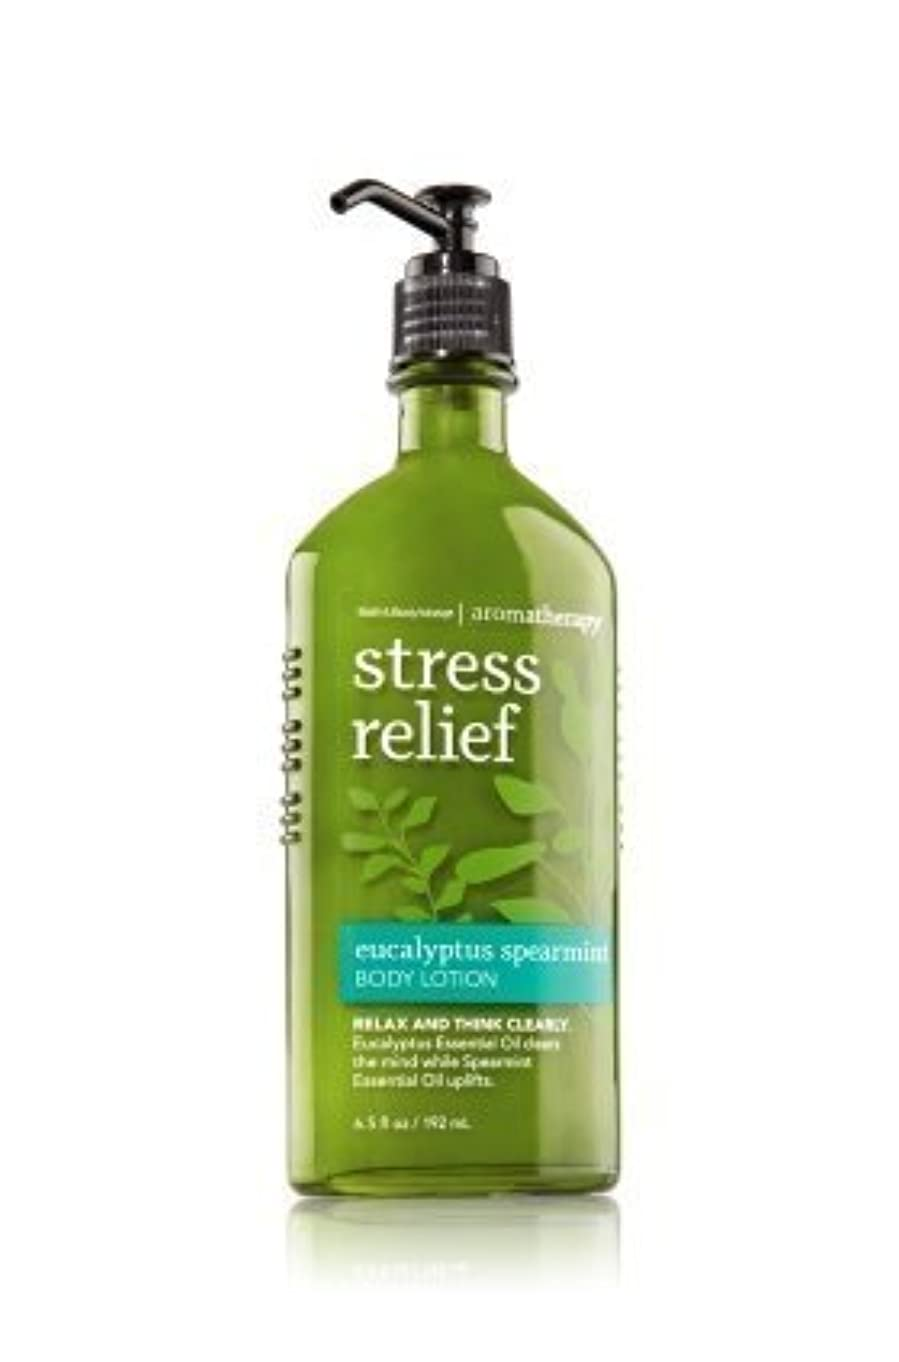 有名な鉱石調べるAromatherapy Stress Relief Eucalyptus Spearmint Body Lotion by Bath & Body Works [並行輸入品]